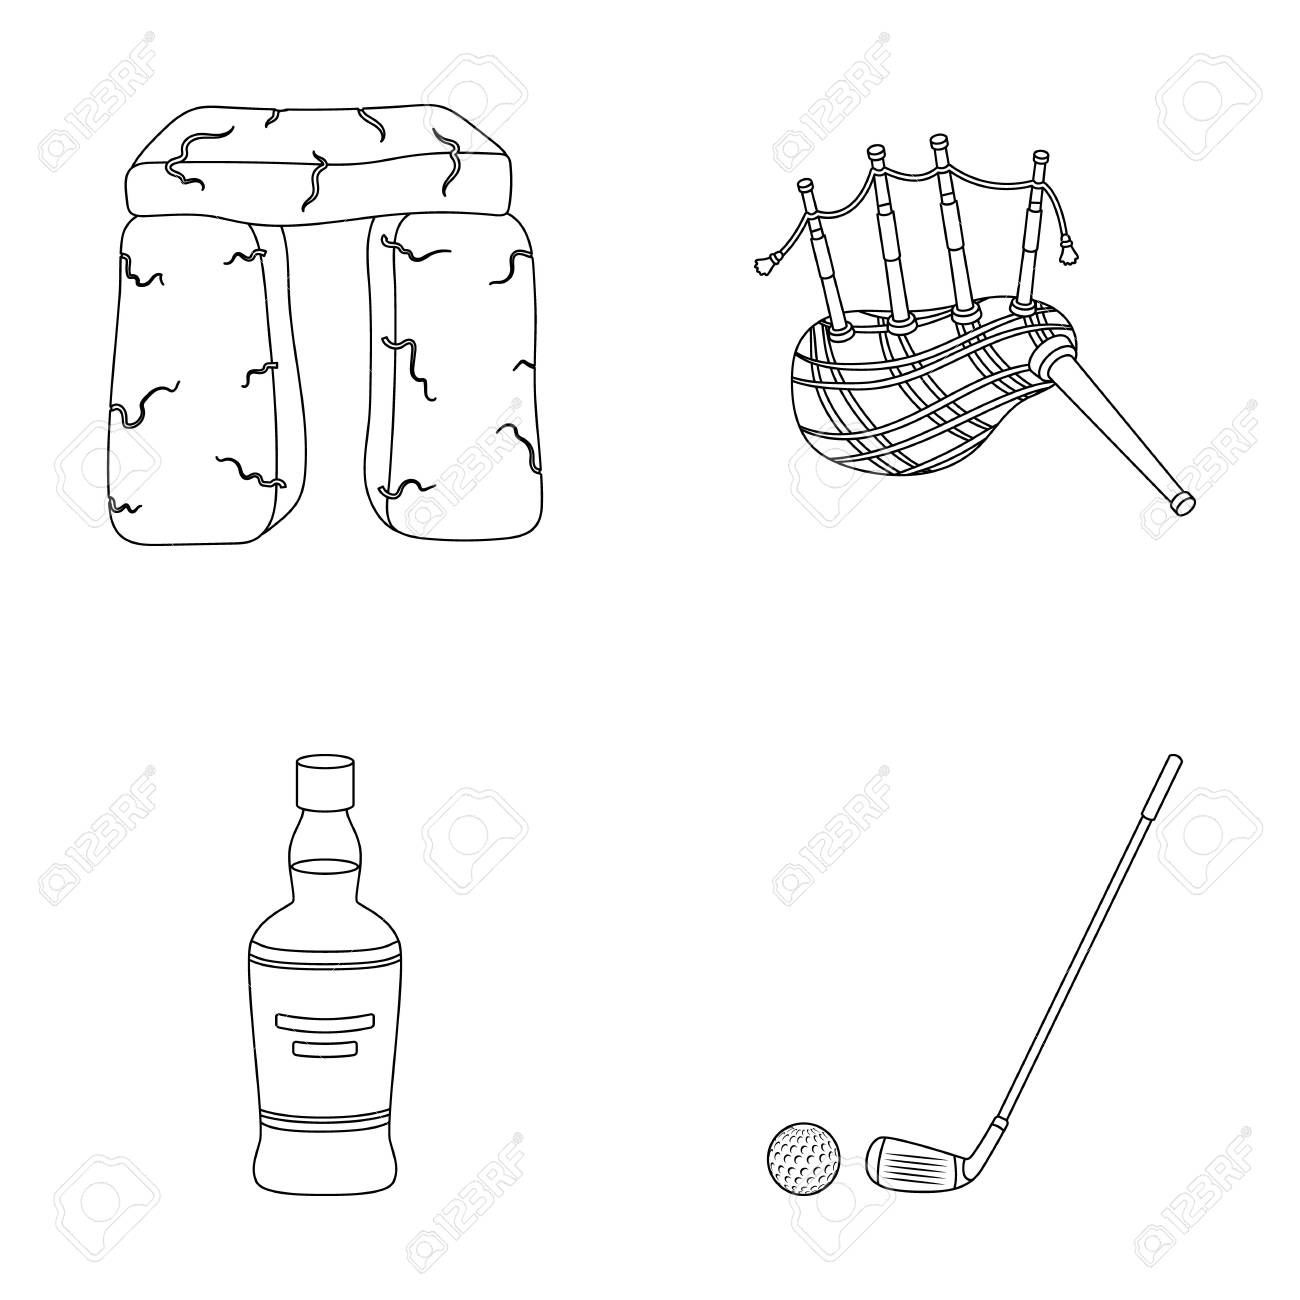 stone monument bagpipe whiskey golf scotland country set Diagram of Assault Rifles stone monument bagpipe whiskey golf scotland country set collection icons in outline